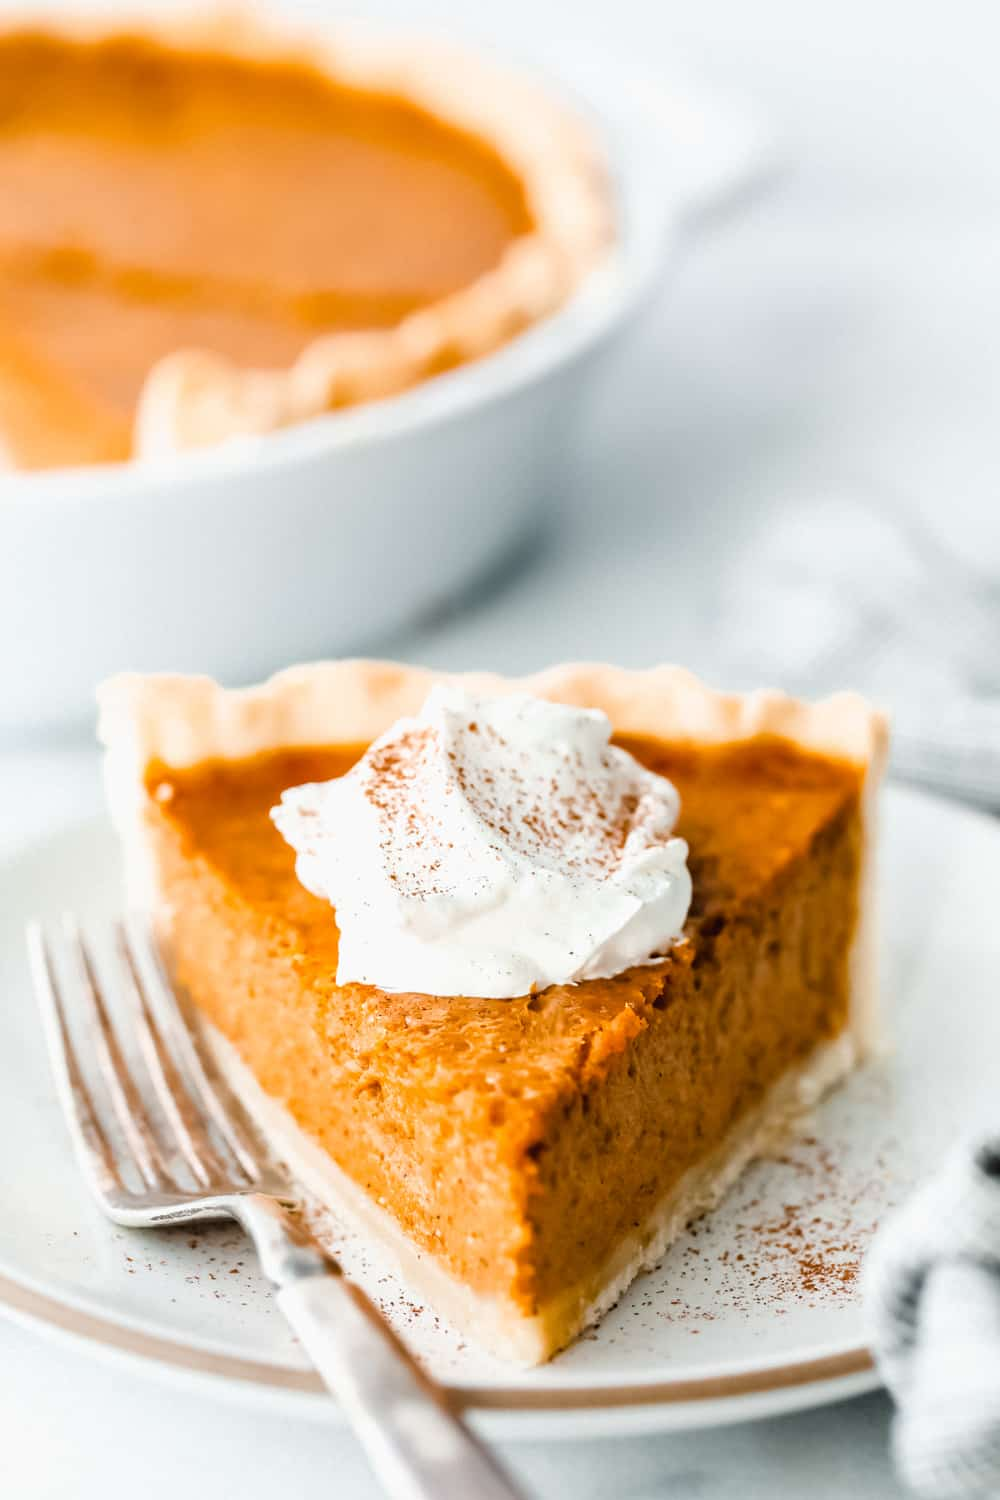 pumpkin pie sliced with whipped cream